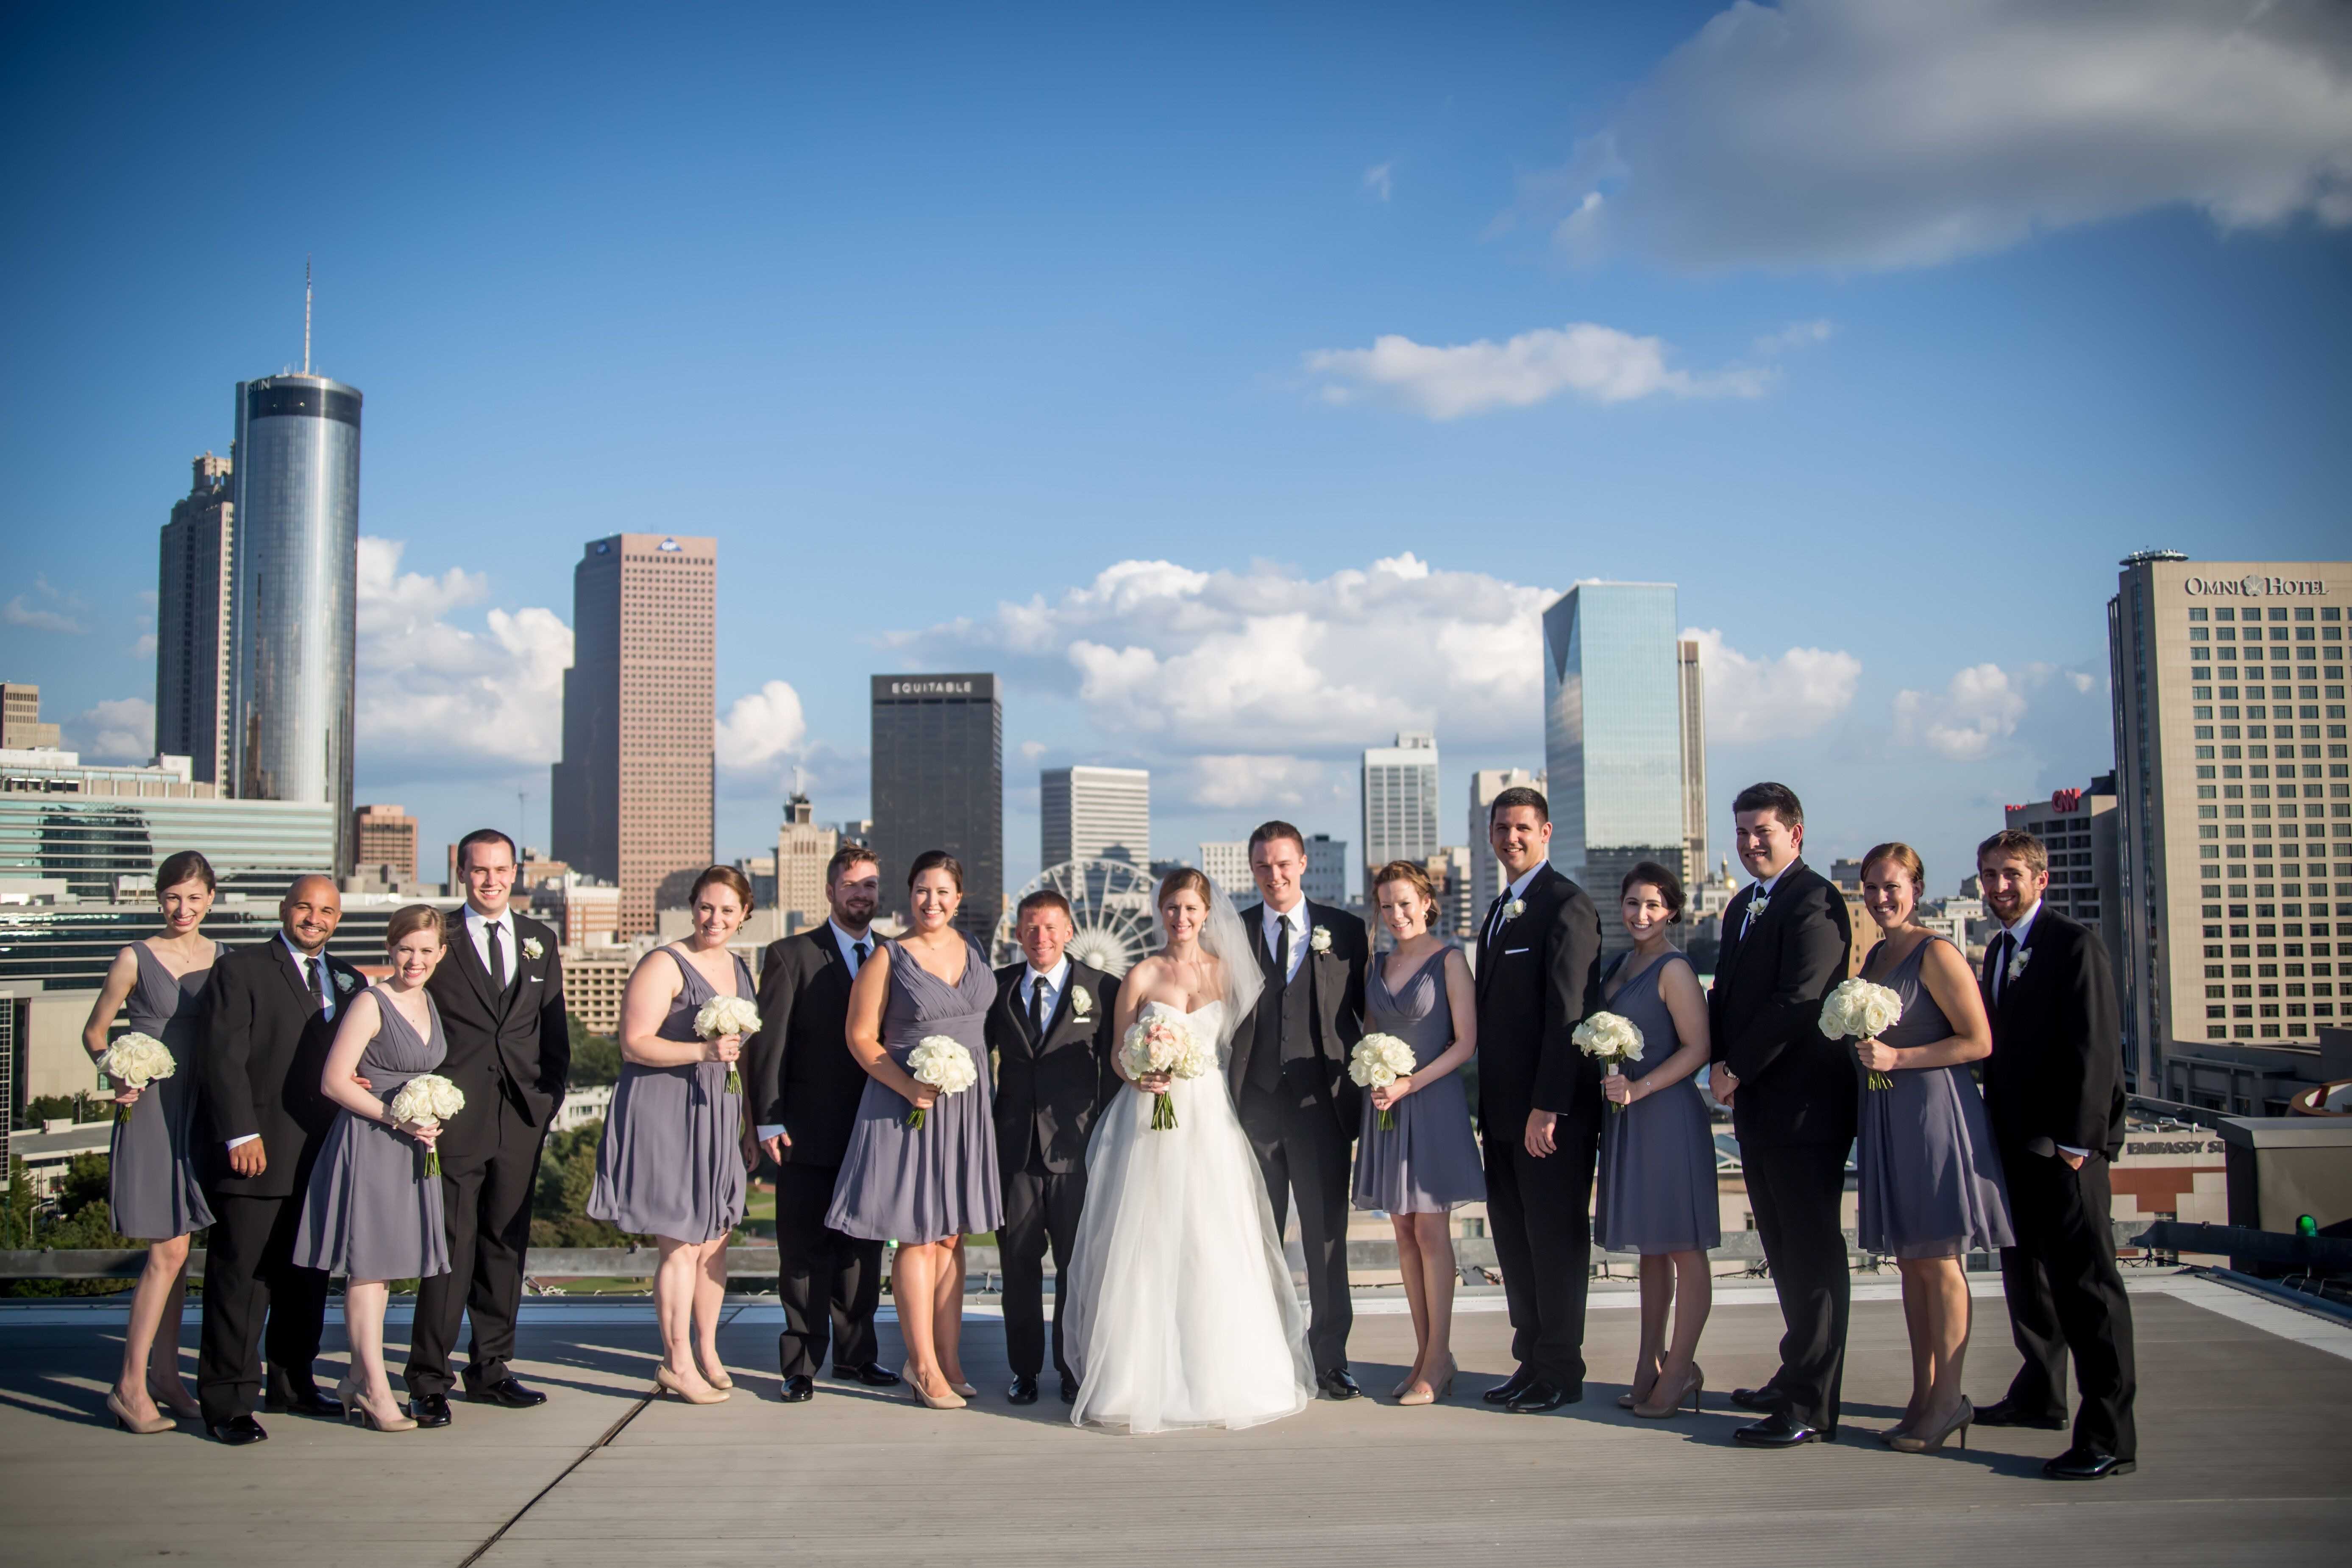 Gray Bridesmaid Dresses and Black Groomsmen Suits